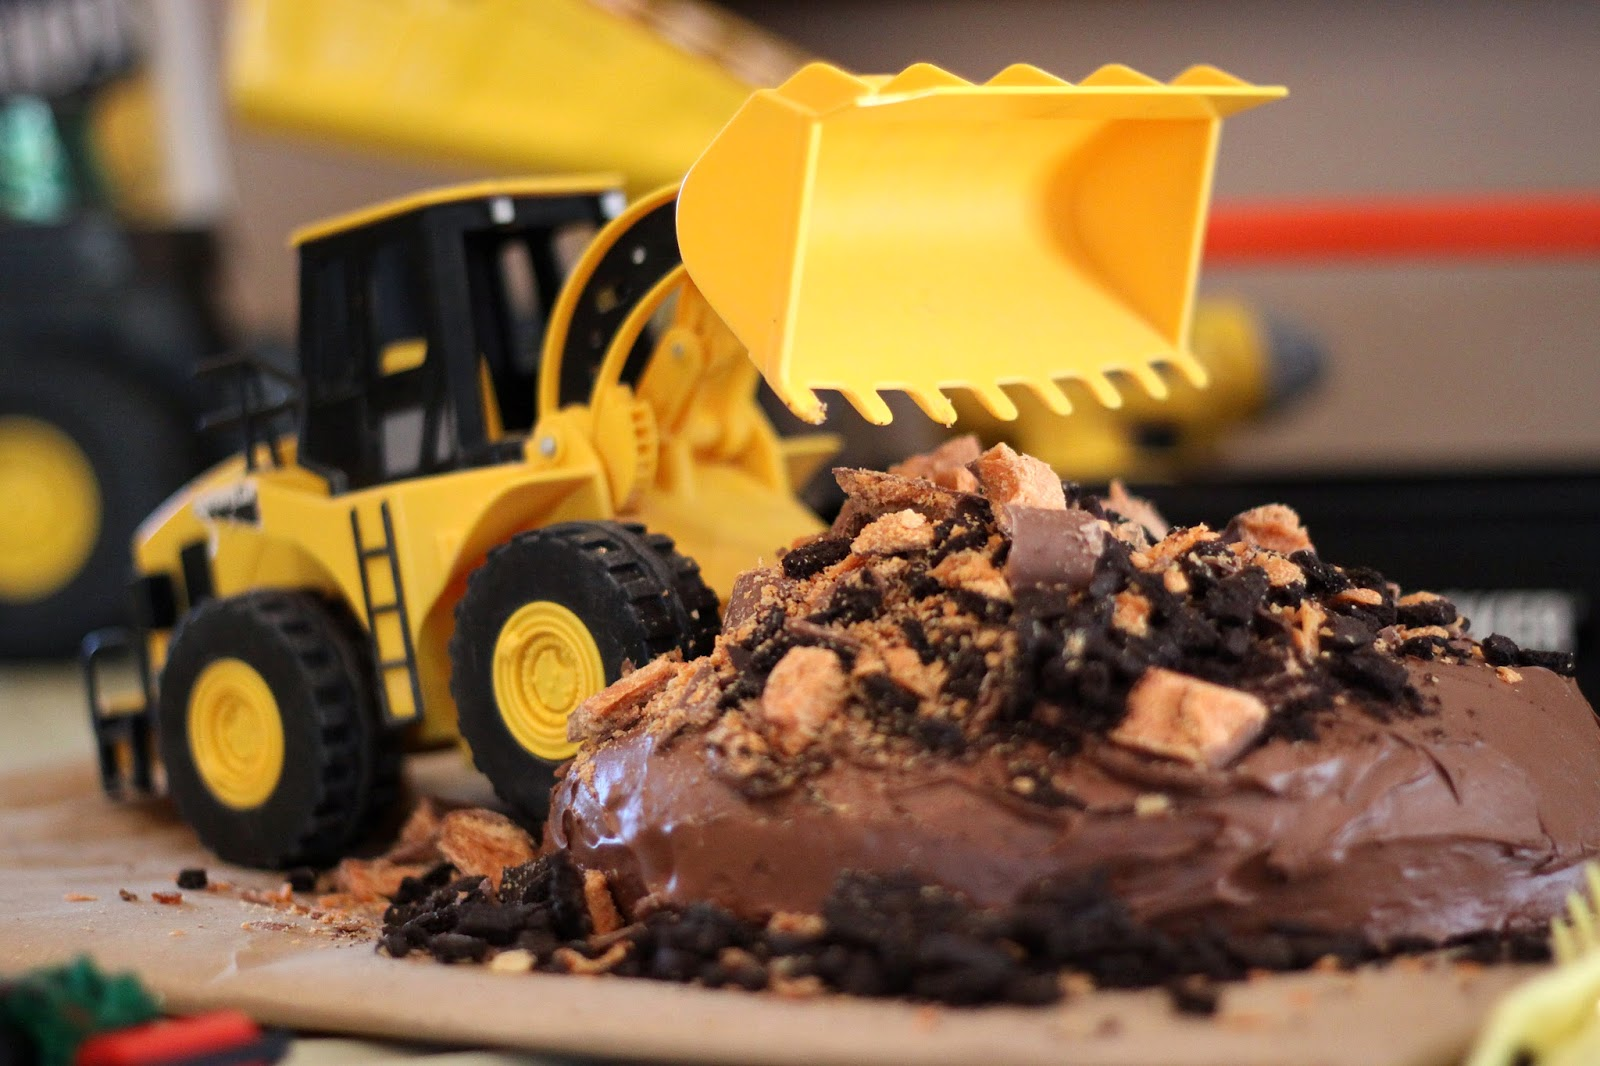 How to host a construction themed birthday party